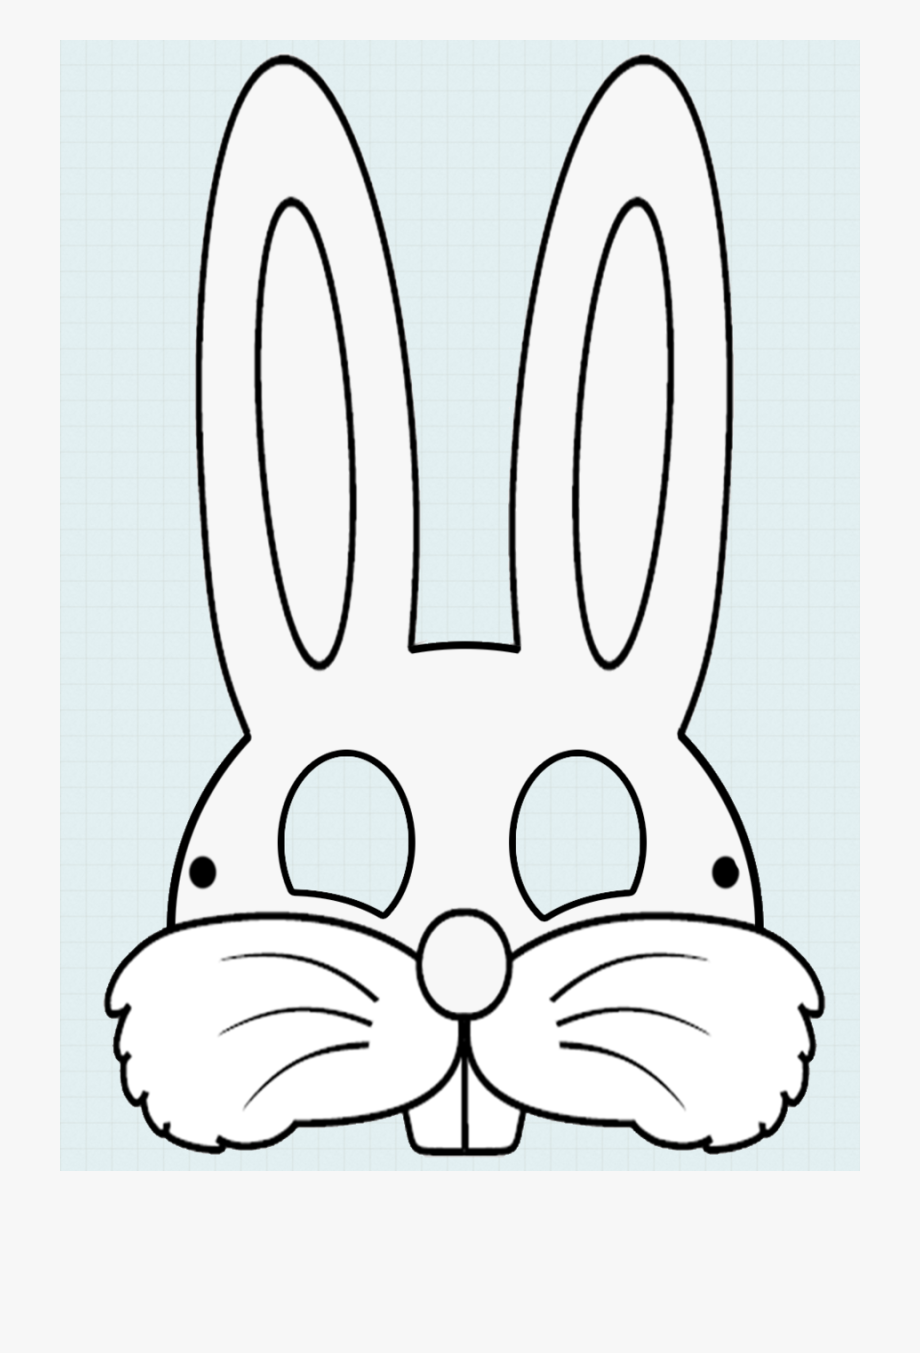 Rabbit Face Mask Template Clipart Easter Bunny Mask.